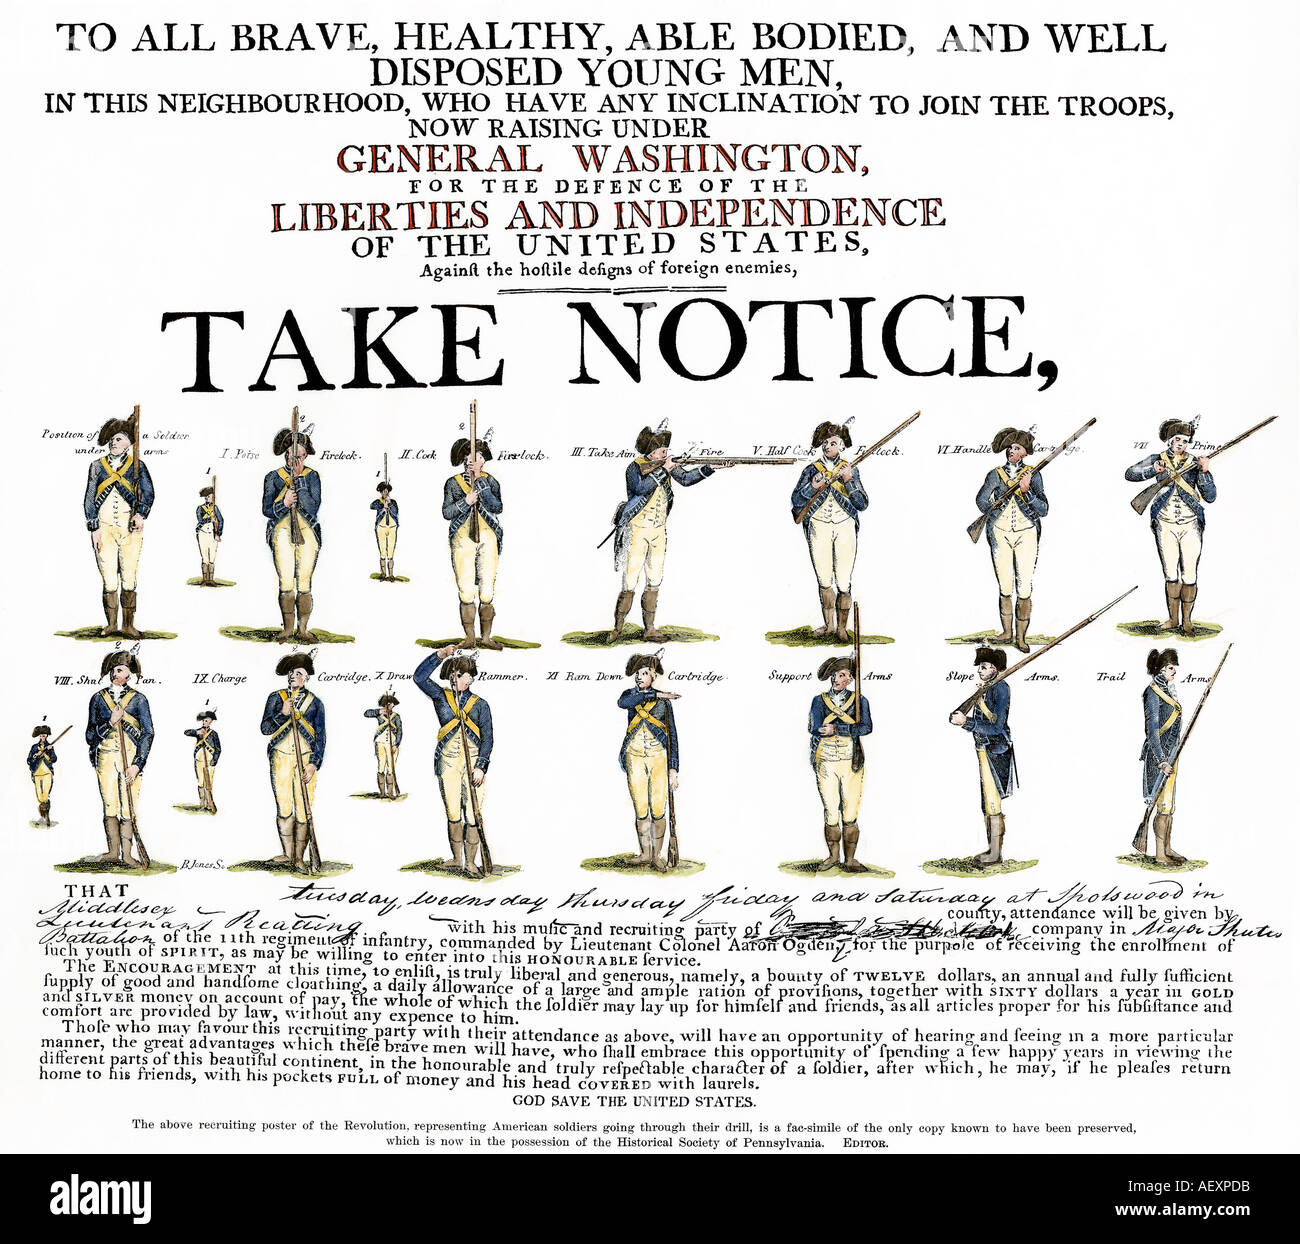 Recruitment poster for Continental soldiers under General George Washington to fight in the American Revolution.. Hand-colored woodcut - Stock Image